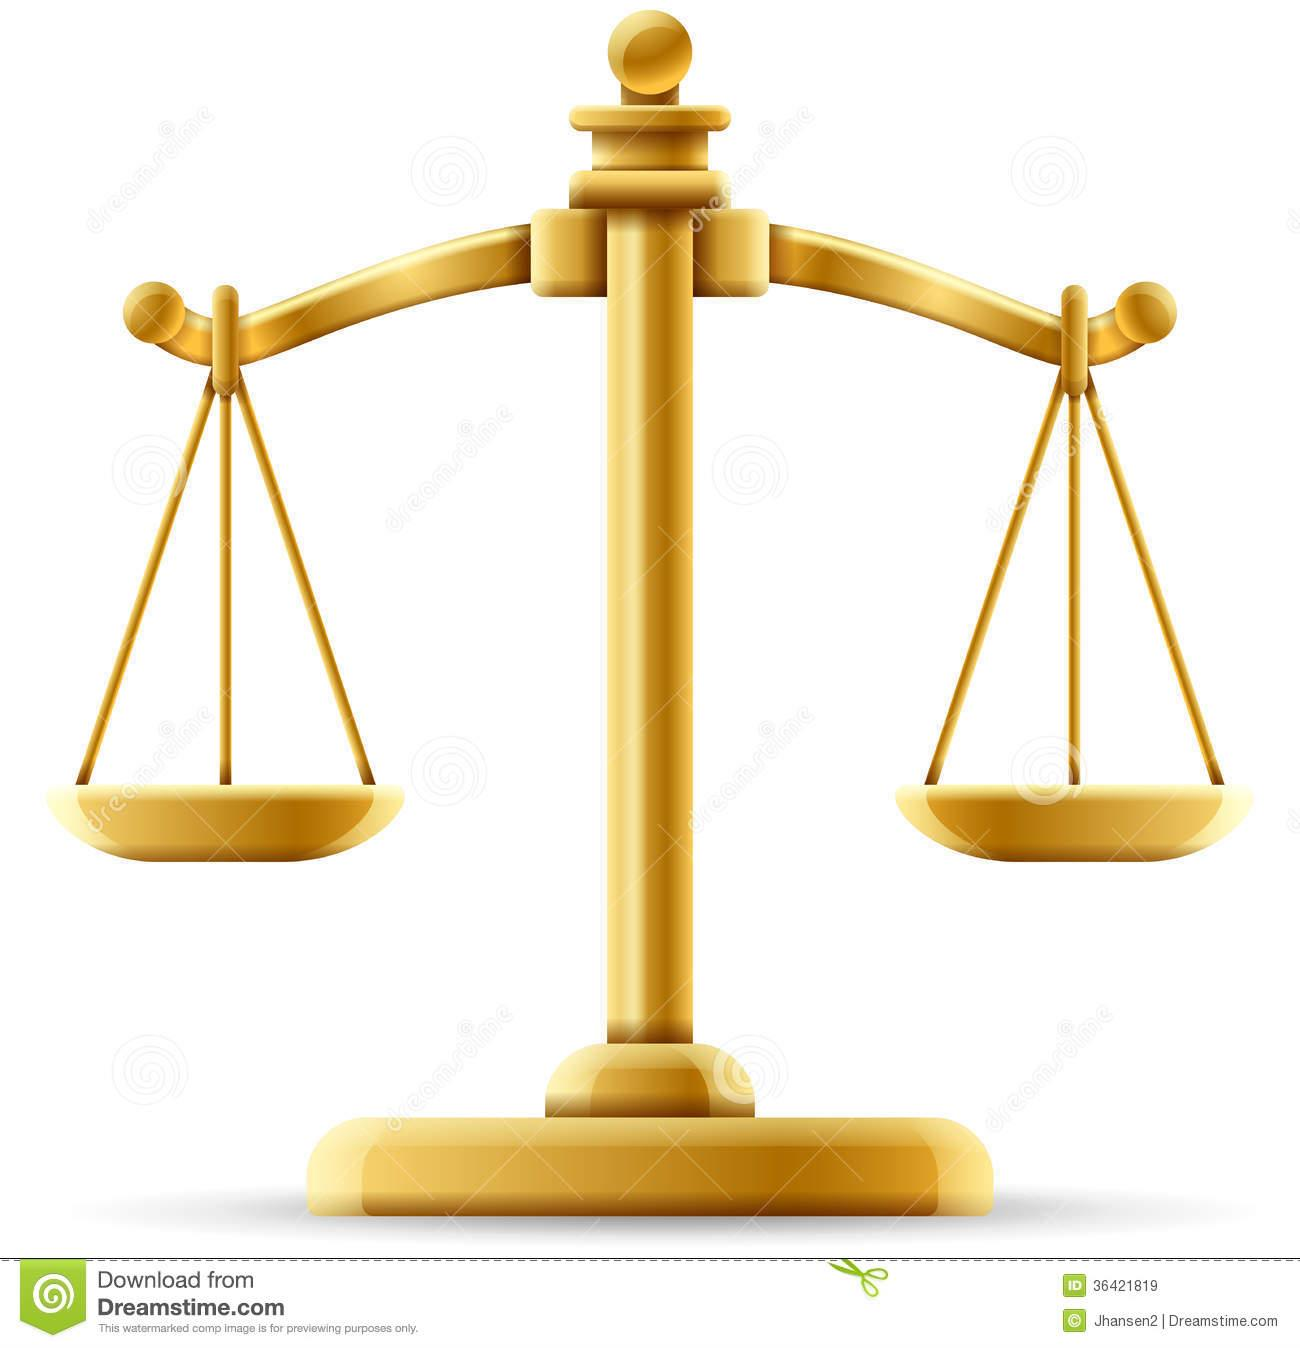 balanced-scale-justice-white-space-copy-36421819